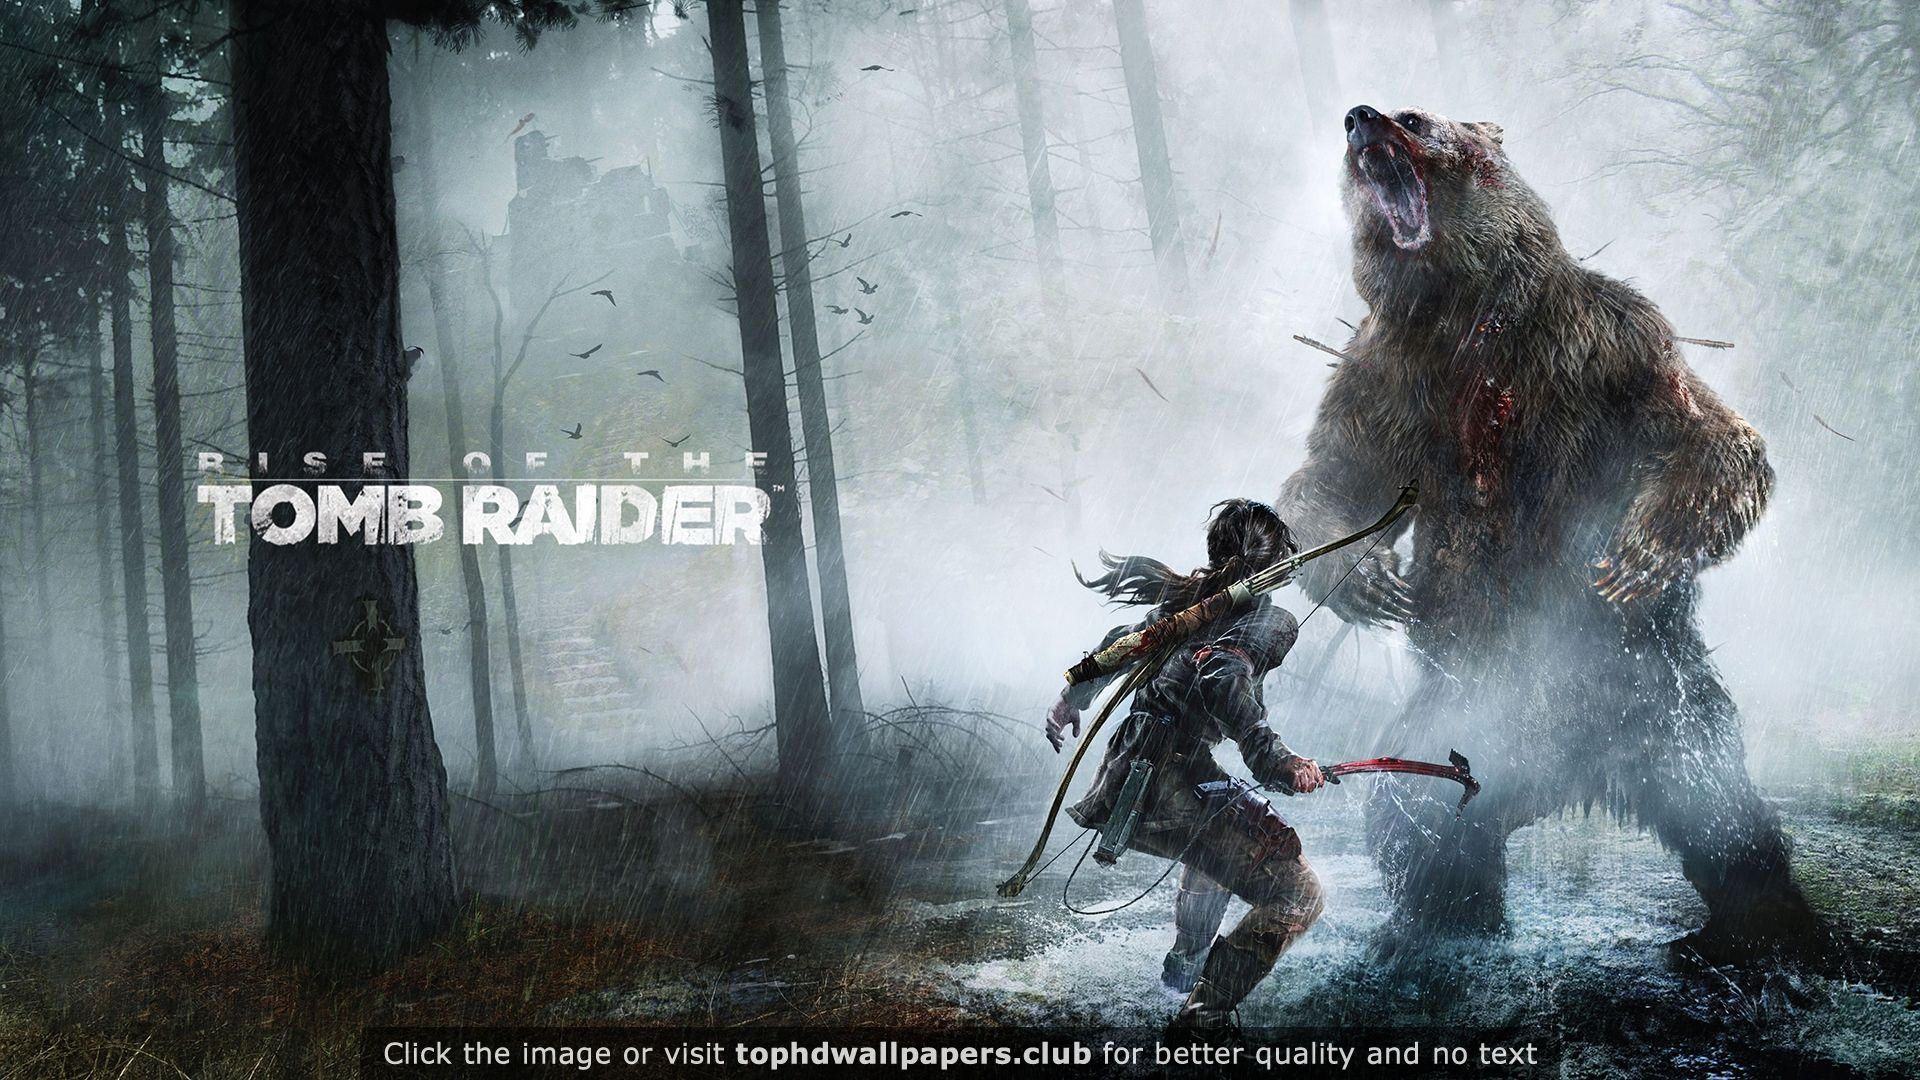 Rise of the Tomb Raider PC Game 4K or HD wallpaper for your PC, Mac or Mobile device